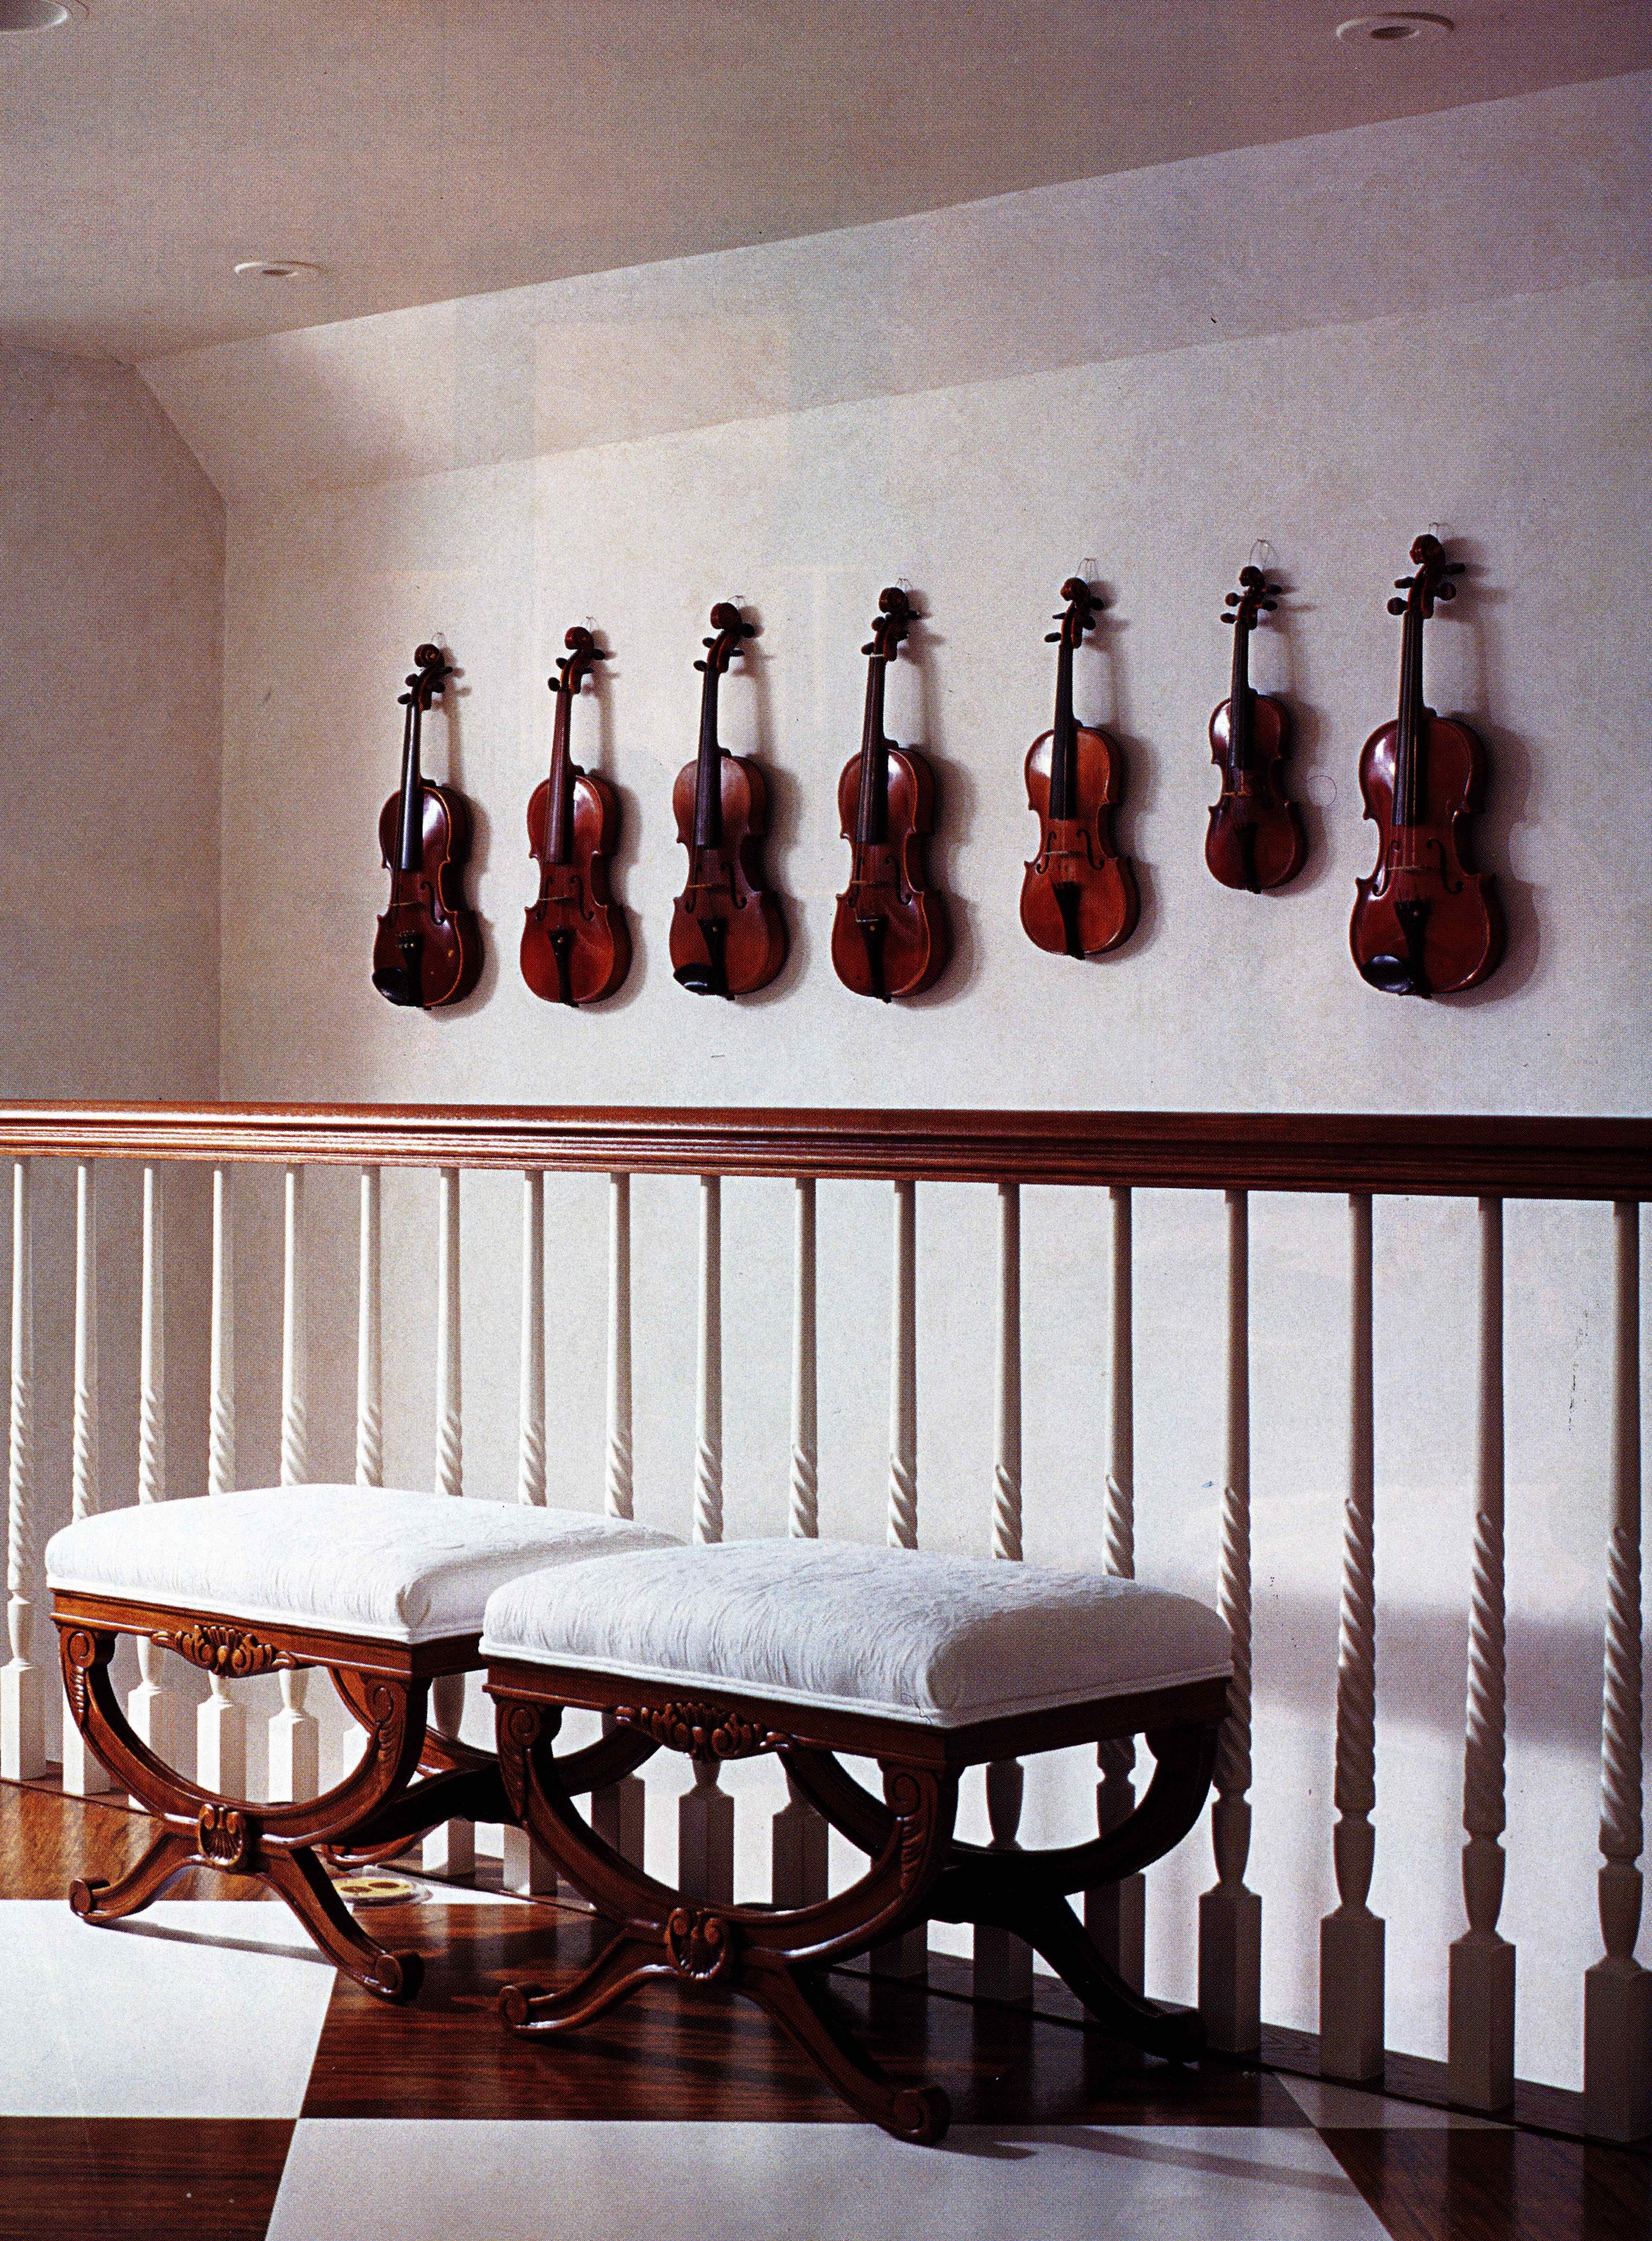 A beautiful, traditional landing with a collection of violins adding to the atmosphere of the space. Source: Unknown